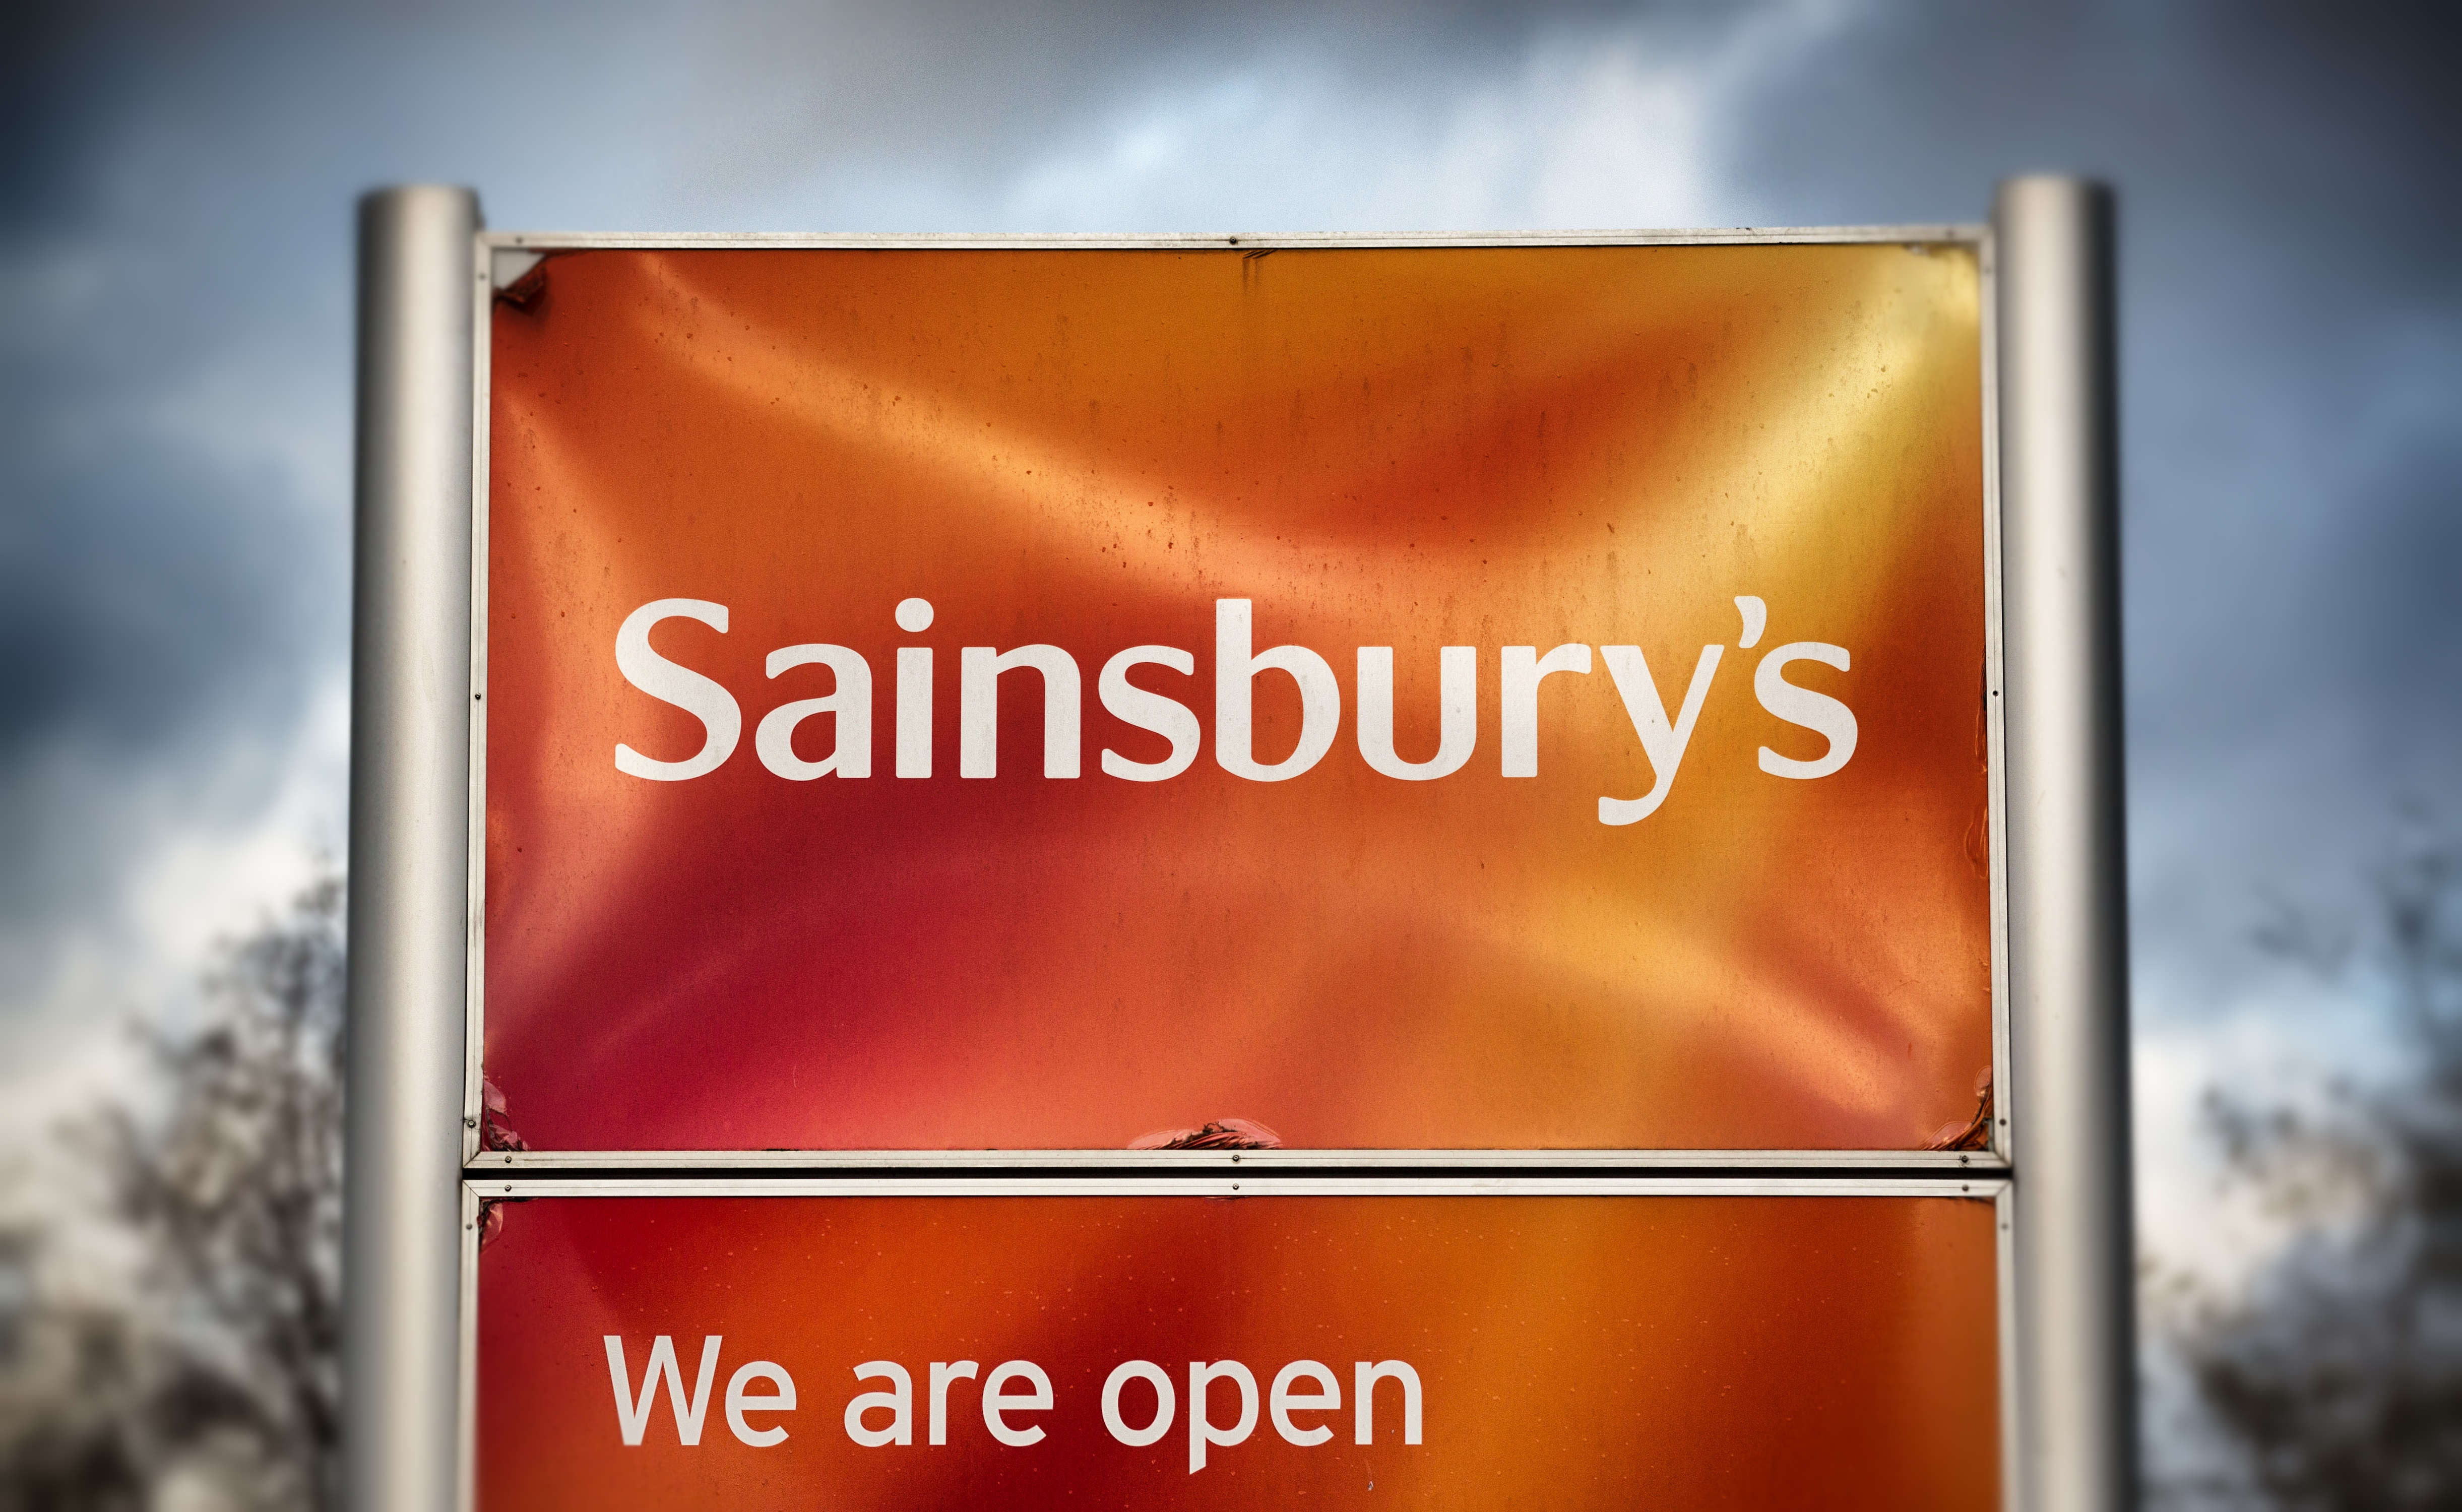 sains1 Gay Couple Kicked Out Of Sainsburys For Unbelievable Reason